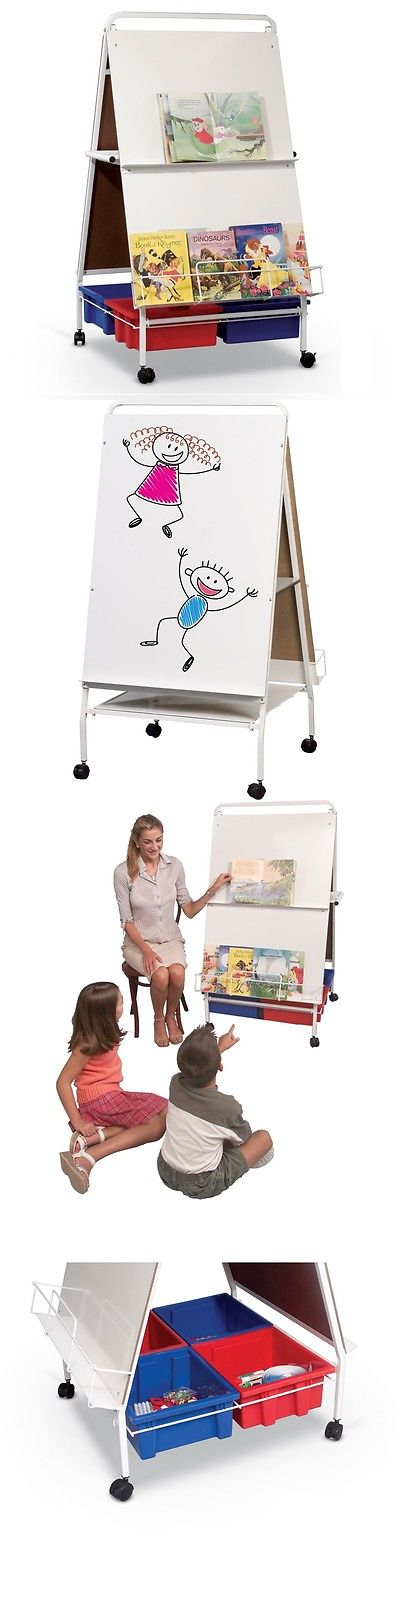 Easels 41204: Mooreco Best-Rite Baby Folding Wheasel Easel With Tubs And Tub Rack, 784T New -> BUY IT NOW ONLY: $175.28 on eBay!